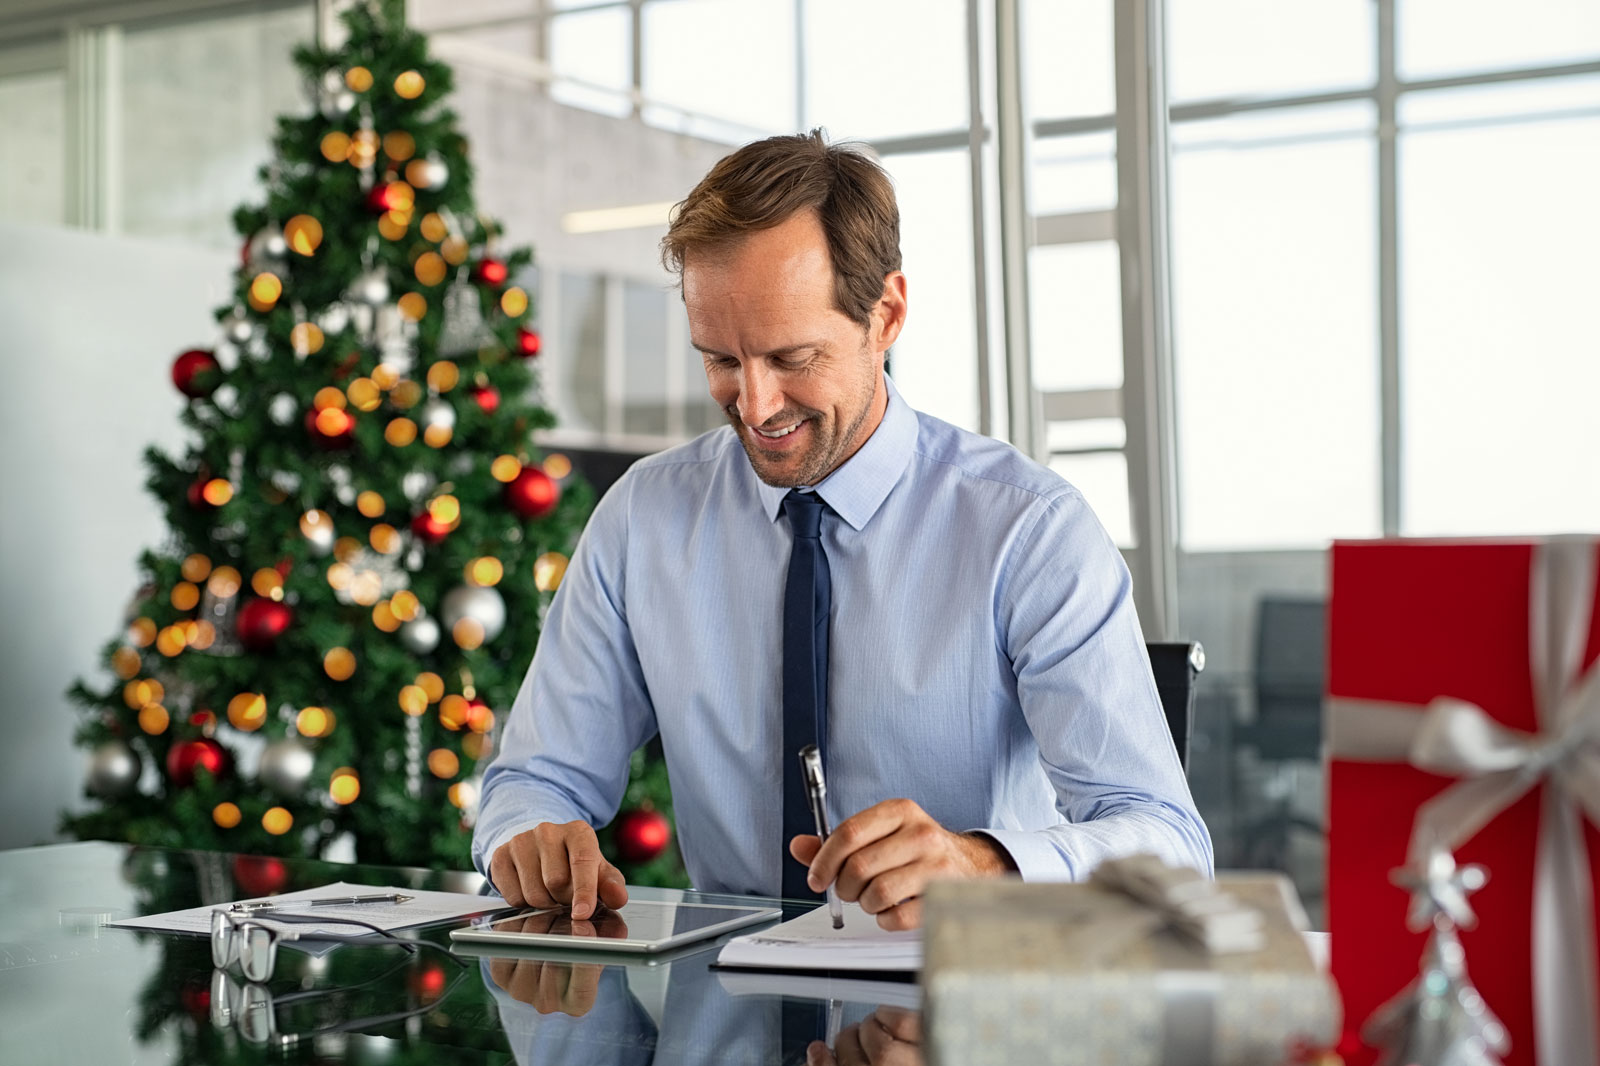 4-Business-Lessons-We-Can-Learn-From-Hallmark-Holiday-Movies